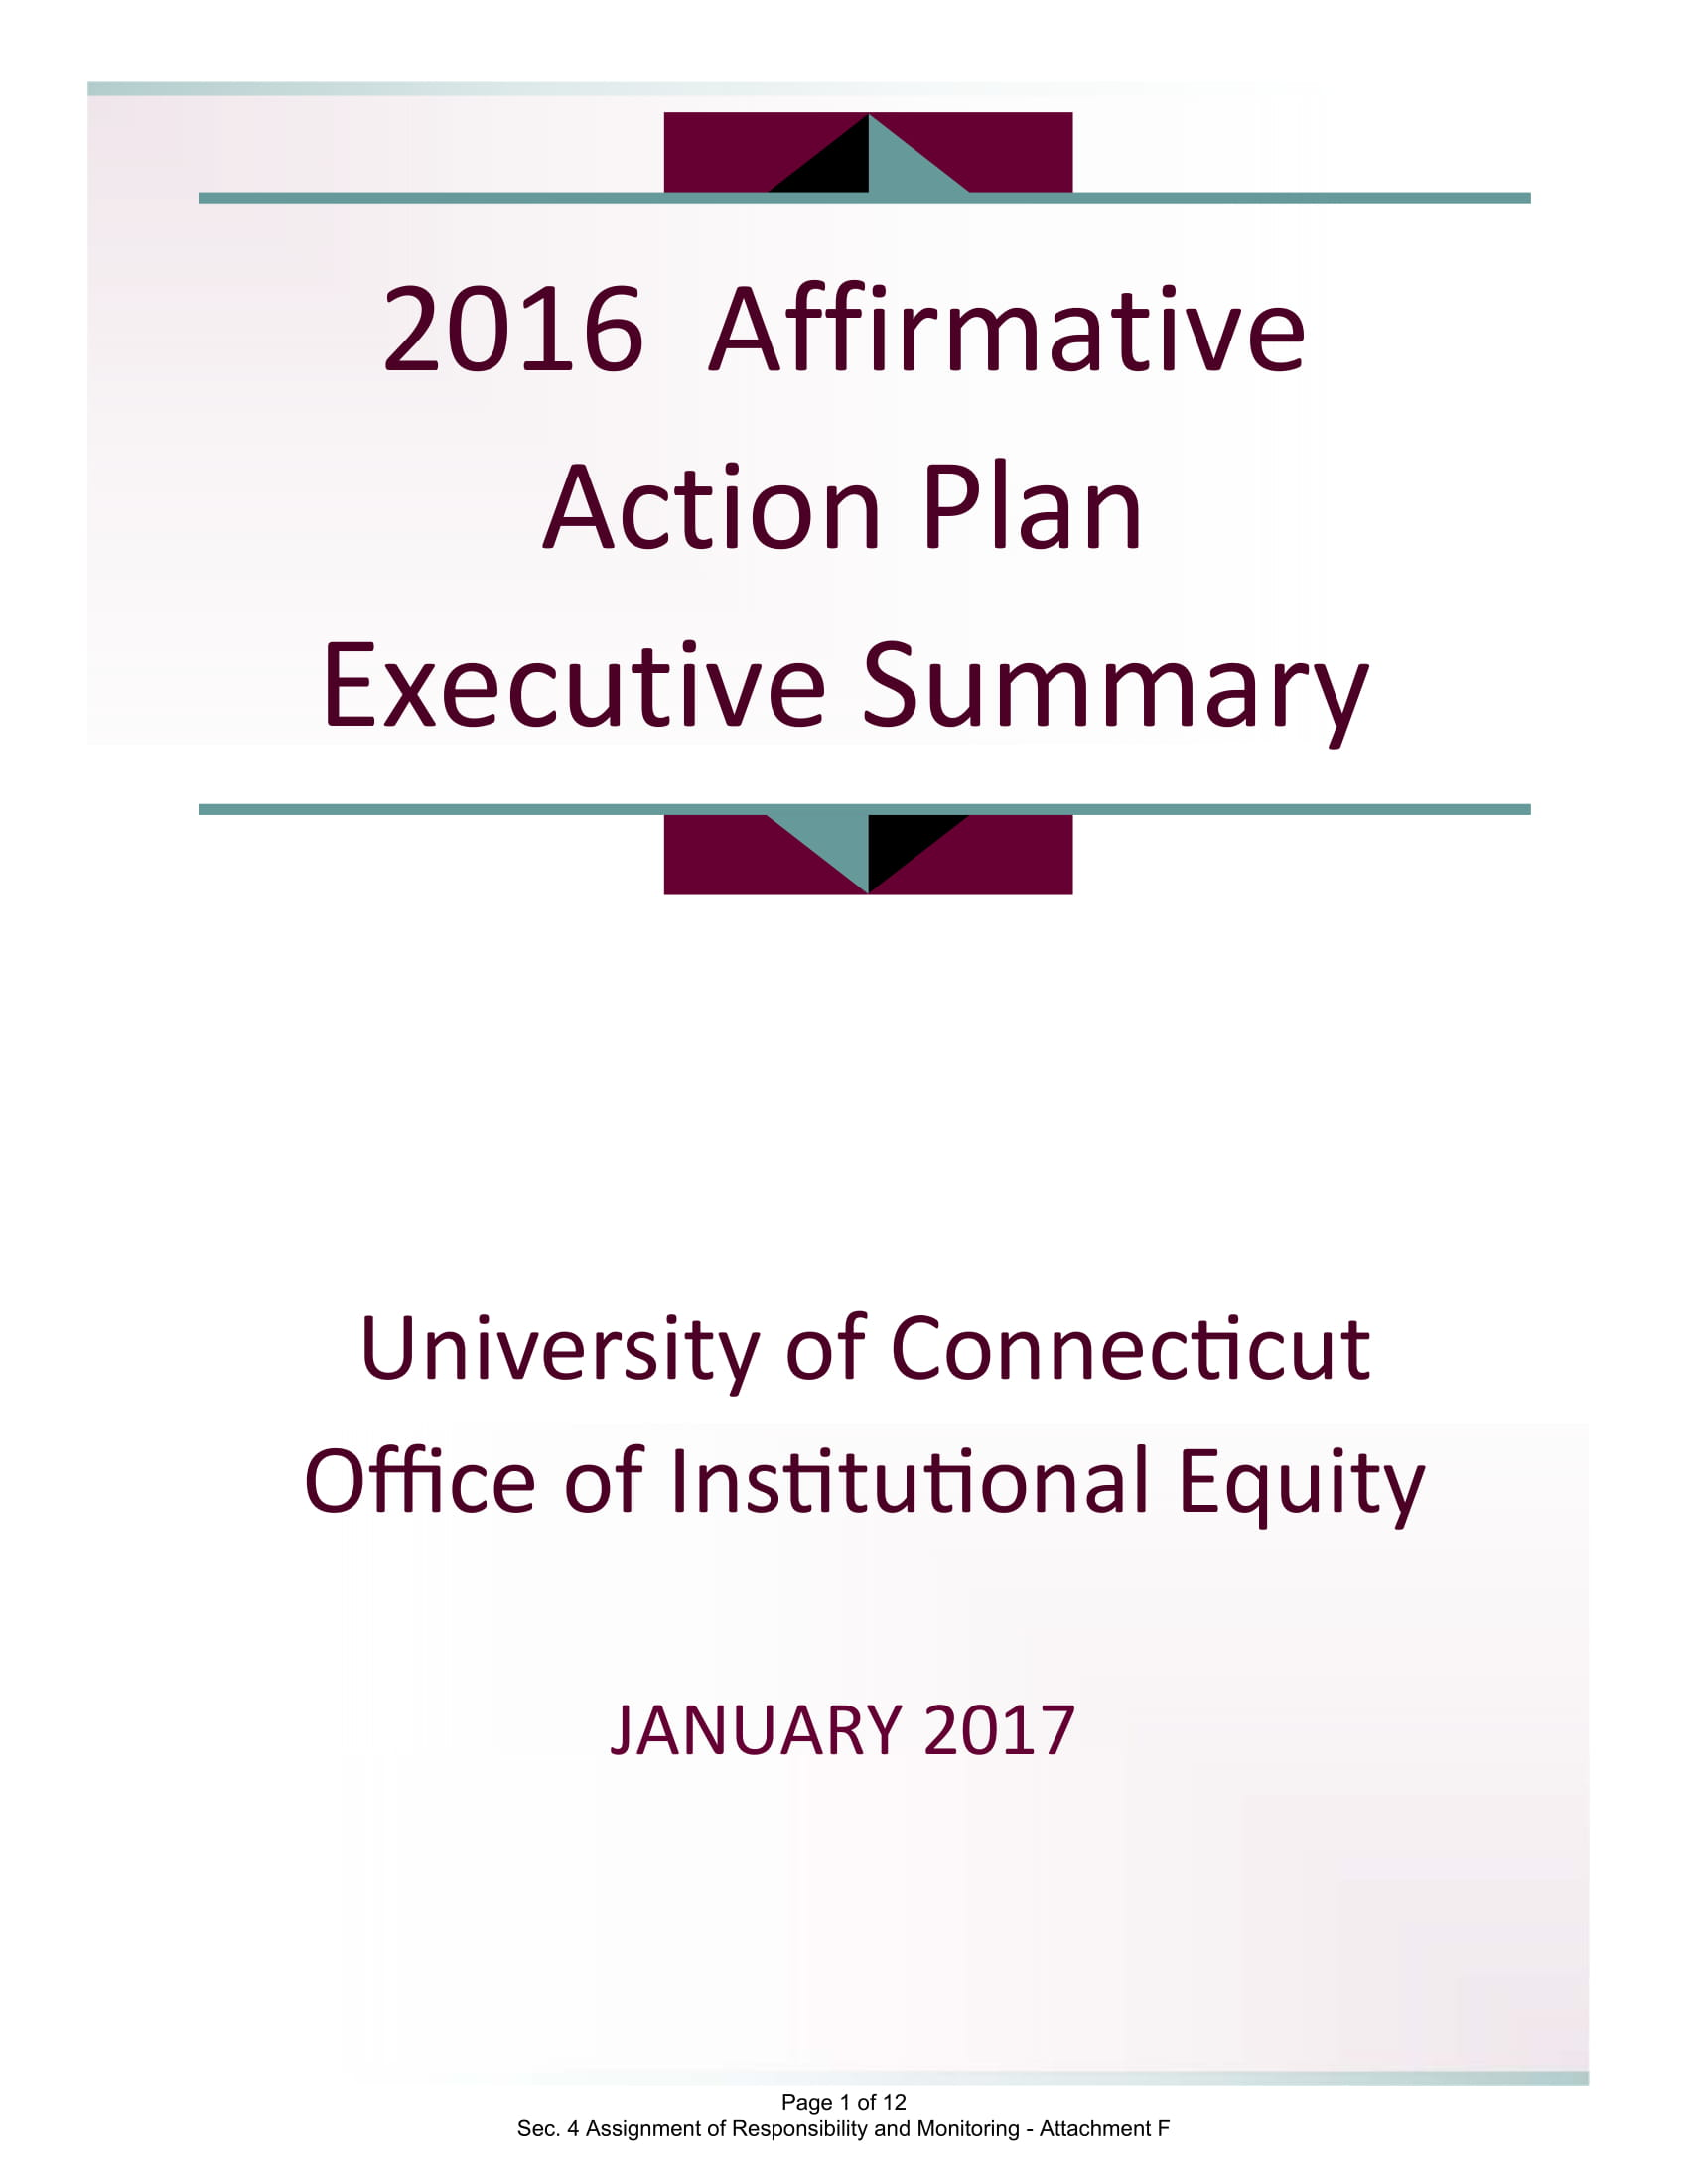 affirmative action plan executive summary example 01